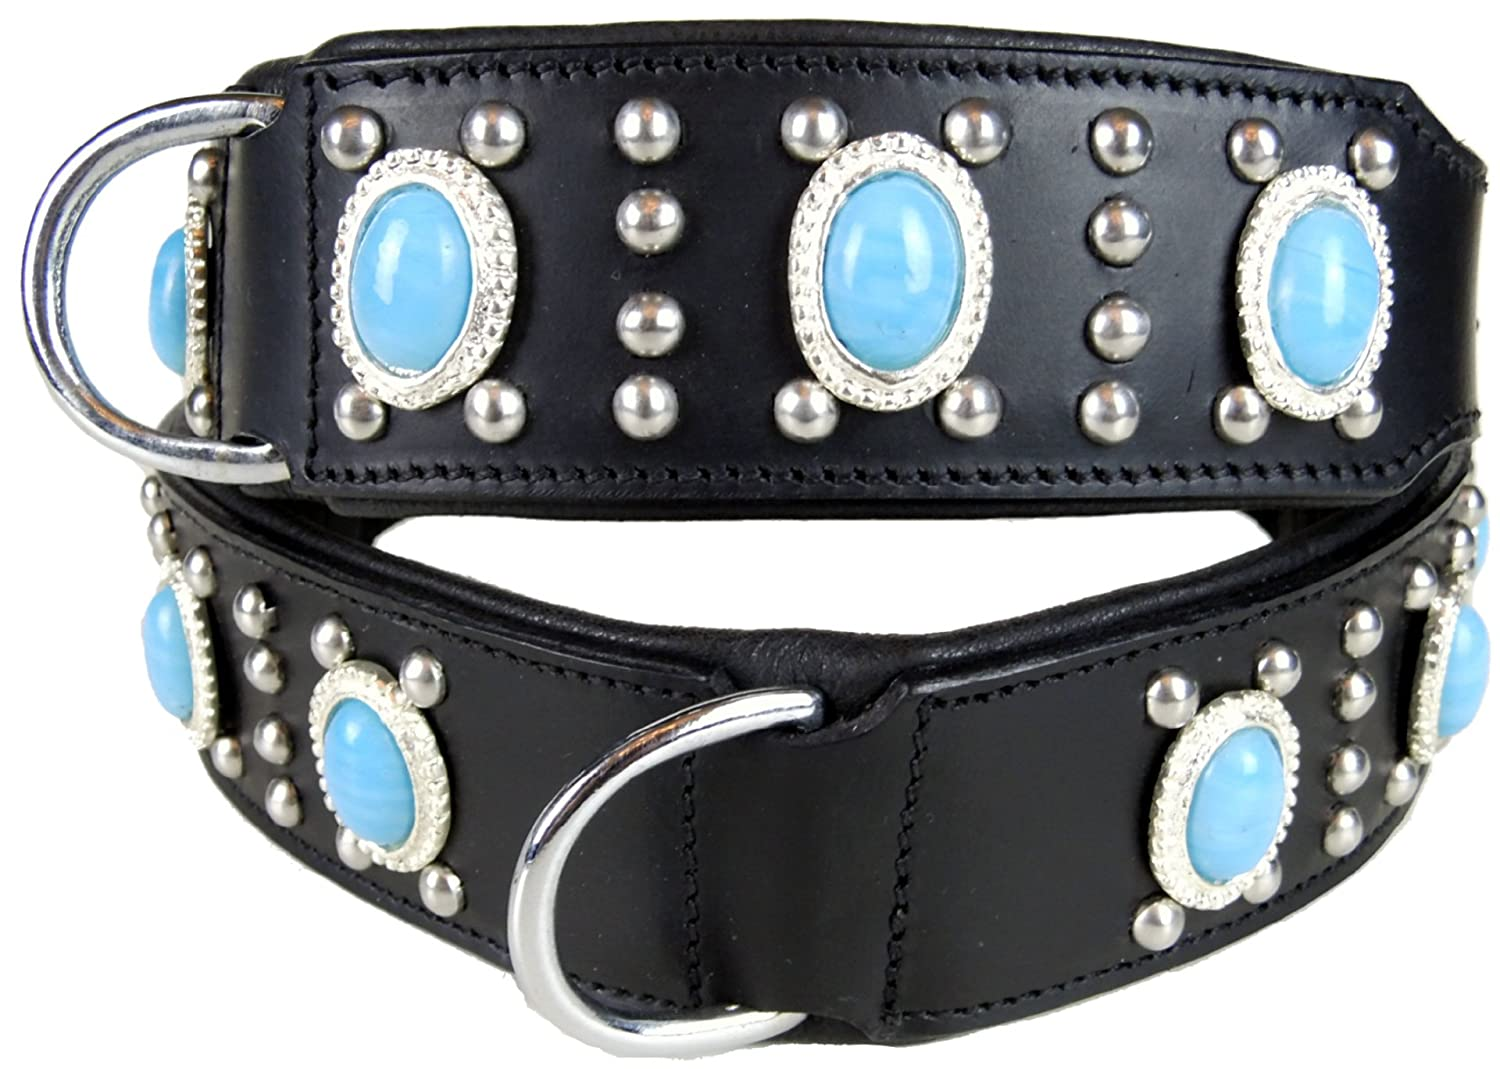 60 cm x 4.5 cm Leather collar empire Cowhide Black with Turquoise Stones – Extra-Wide – Dogs Stars